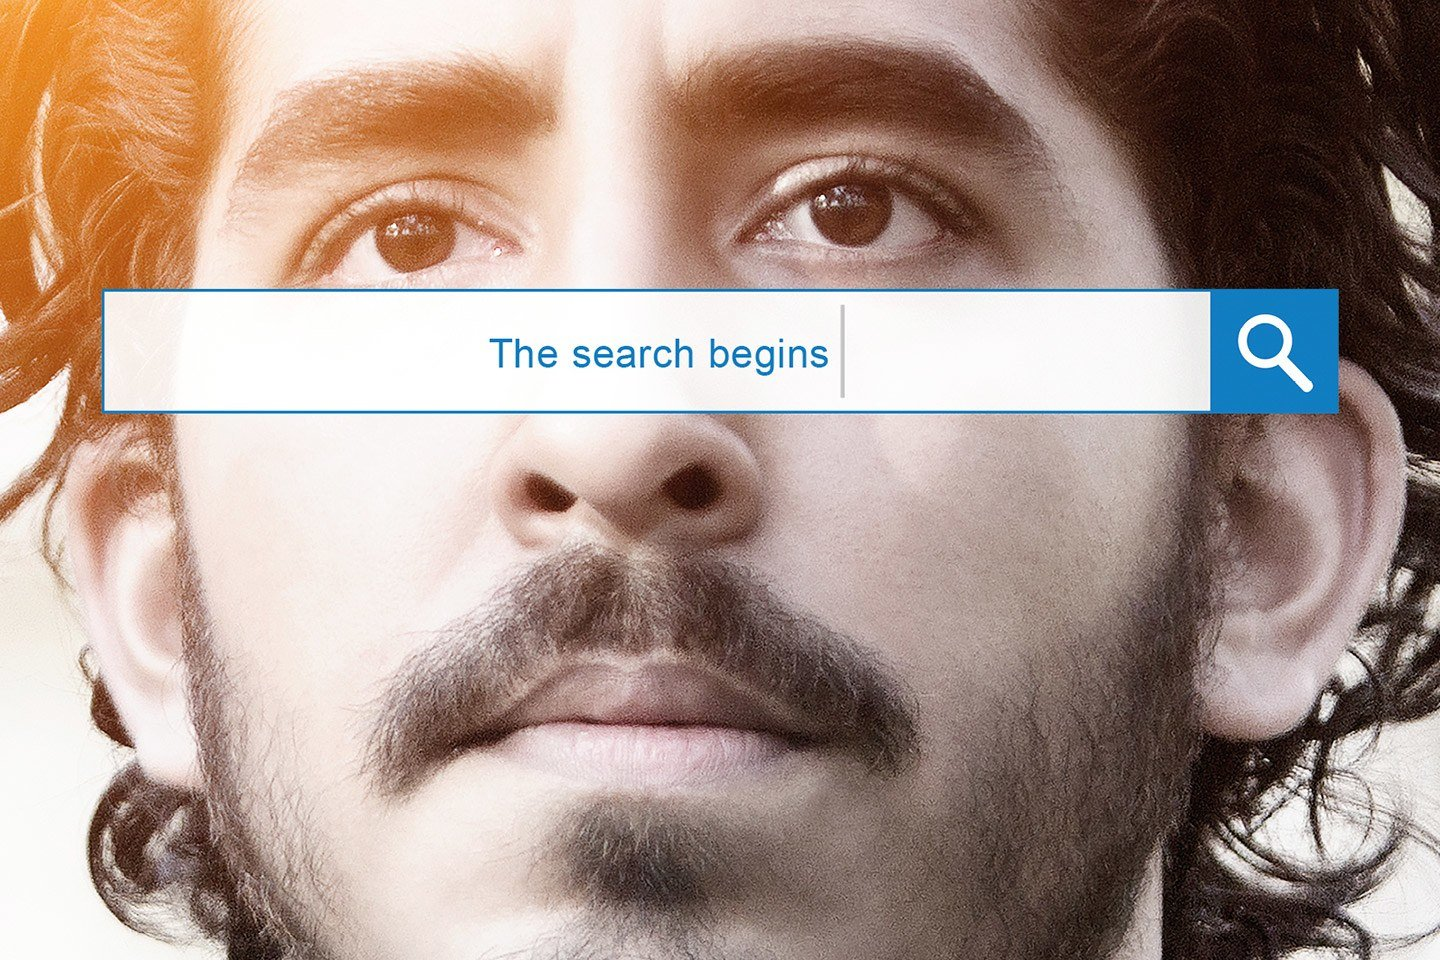 Lion Movie Review - The Search Begins. Dev Patel